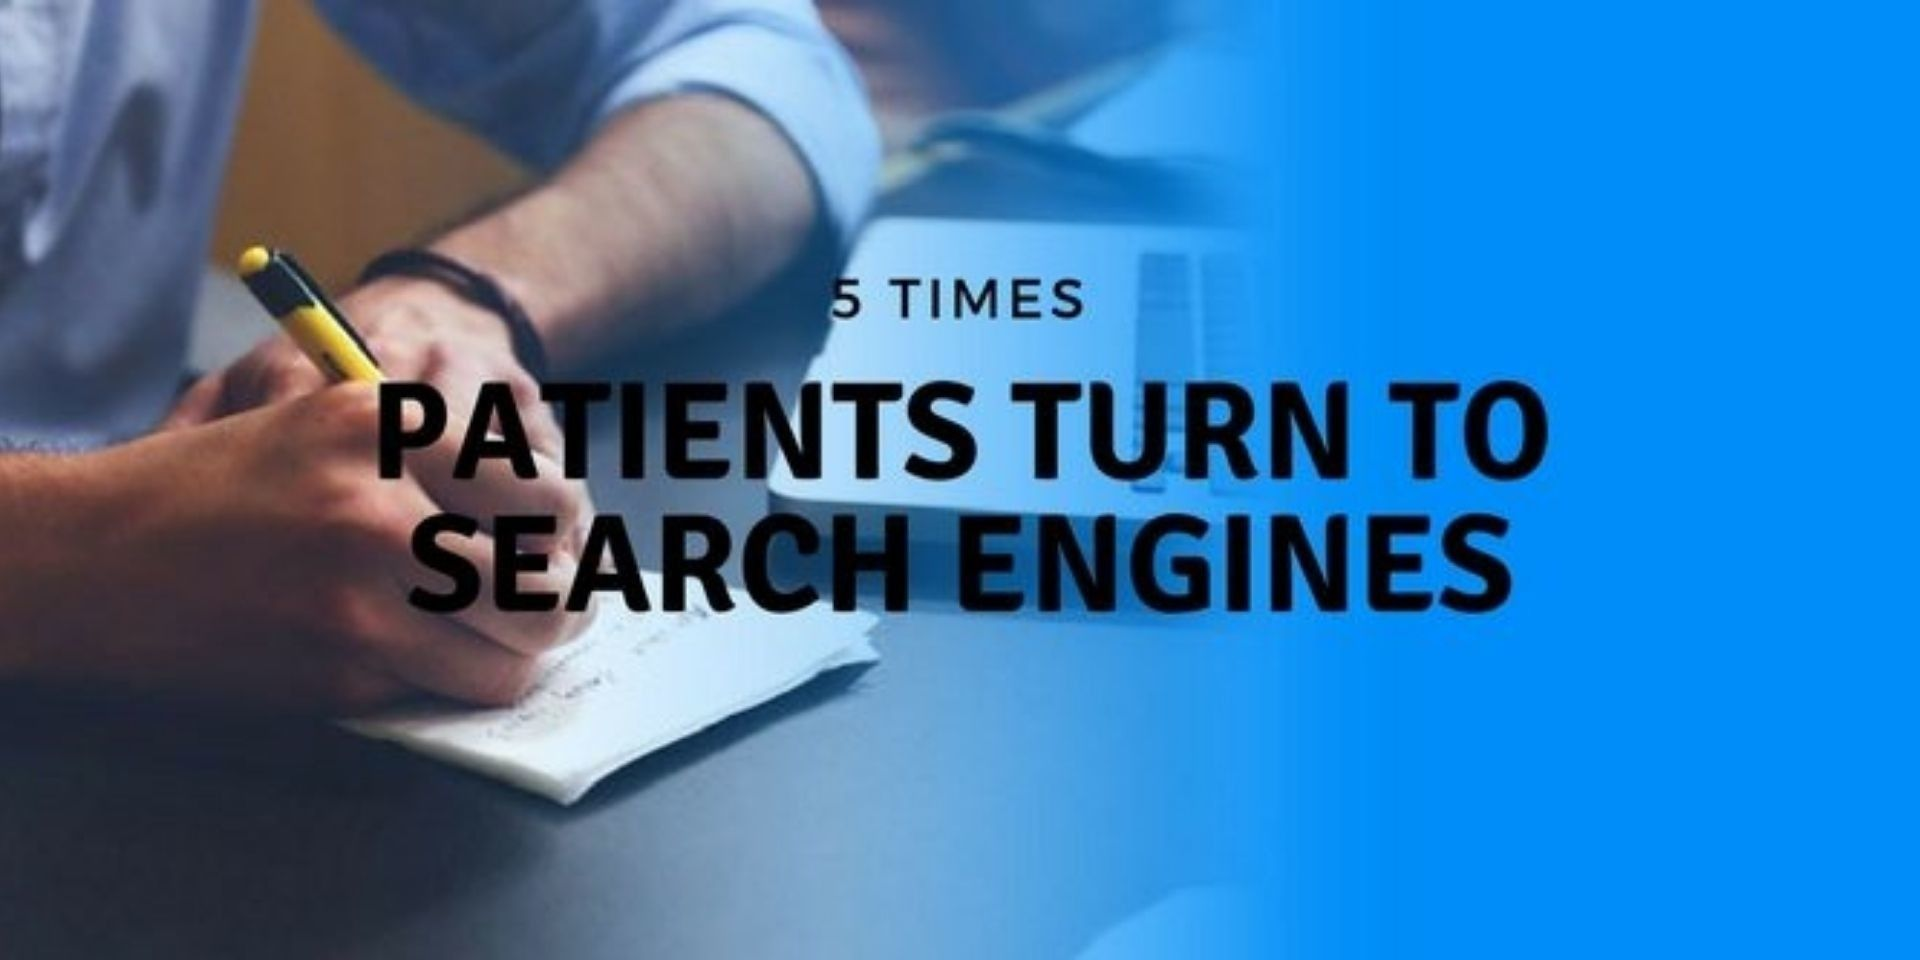 when patients use search engines